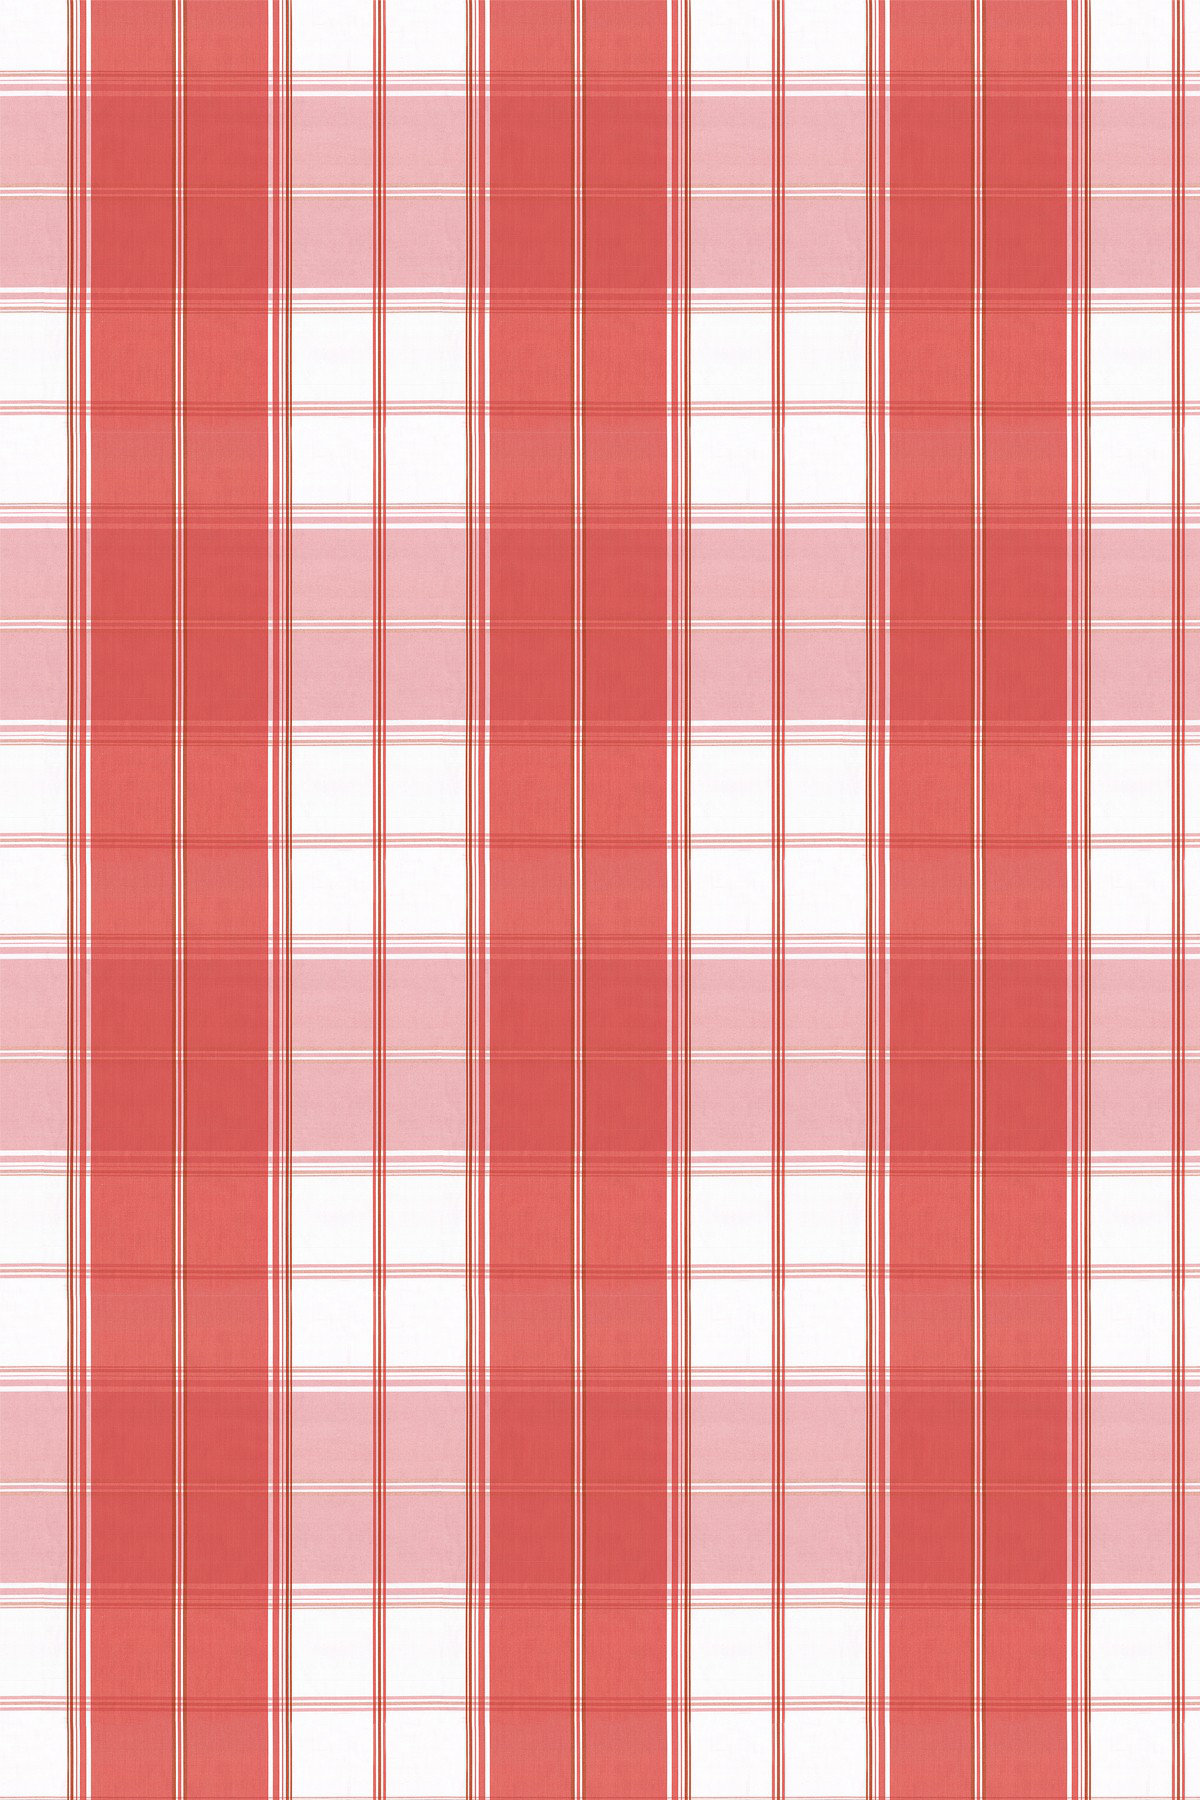 Image of Thibaut Fabric New England Plaid, W724310